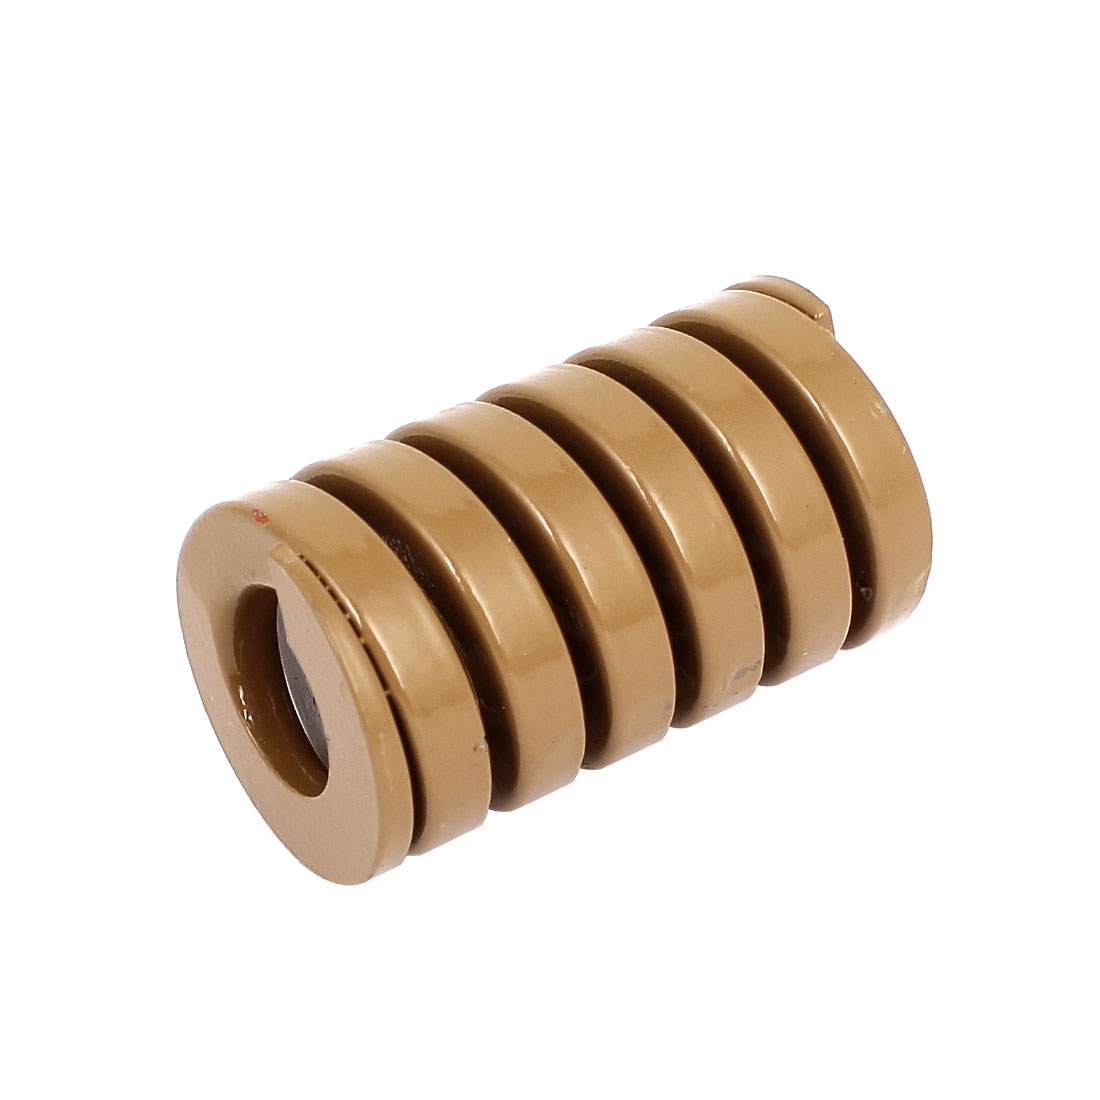 30mm OD 50mm Long Heavy Load Coil Stamping Compression Mold Die Spring Brown